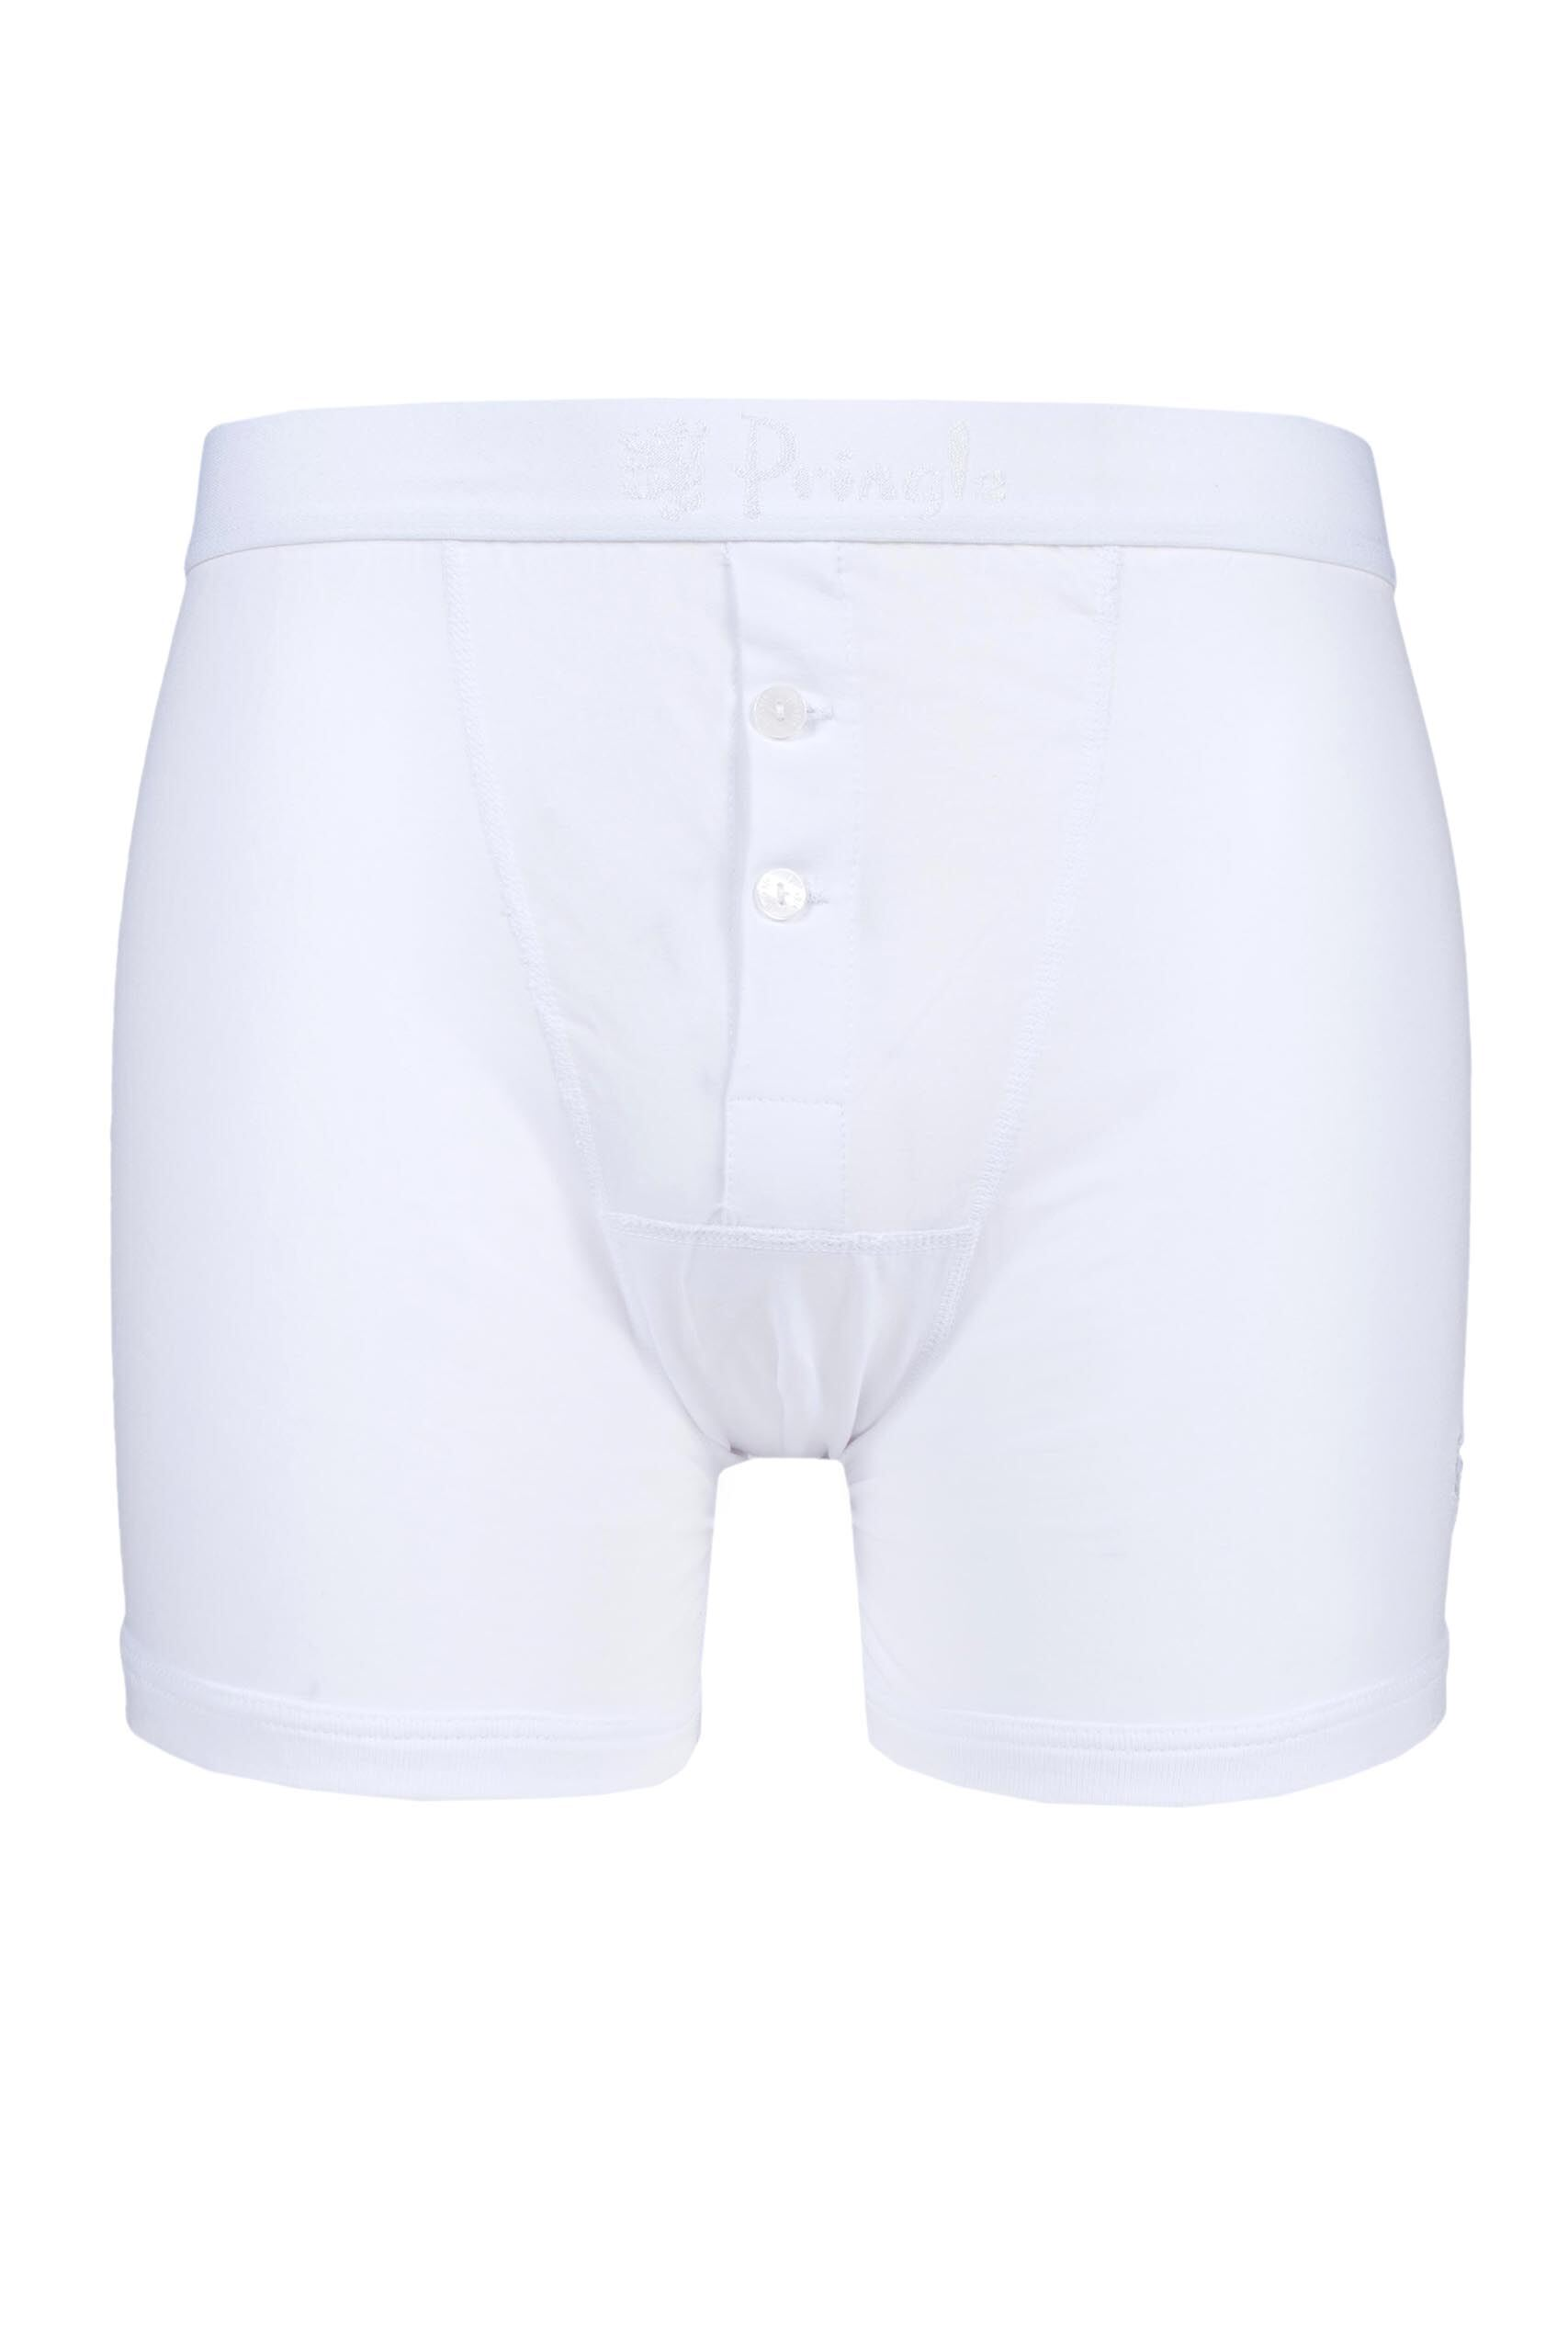 Image of 1 Pack White Button Fly Cotton Fitted Boxer Shorts Men's Extra Large - Pringle